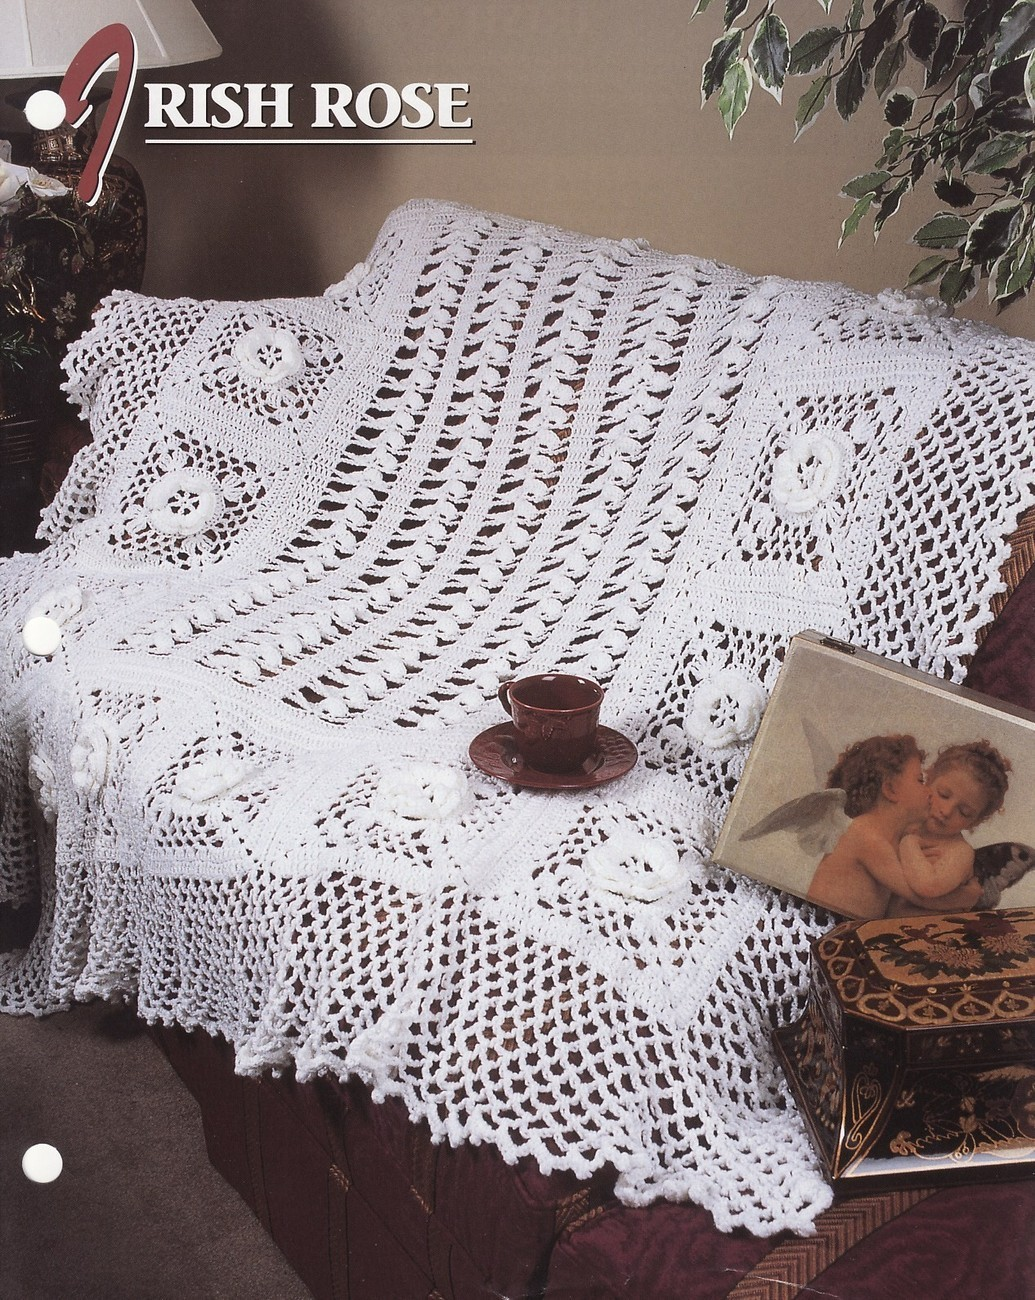 Crochet Beginner Afghan Patterns : AFGHAN CROCHET PATTERN ROSE Patterns